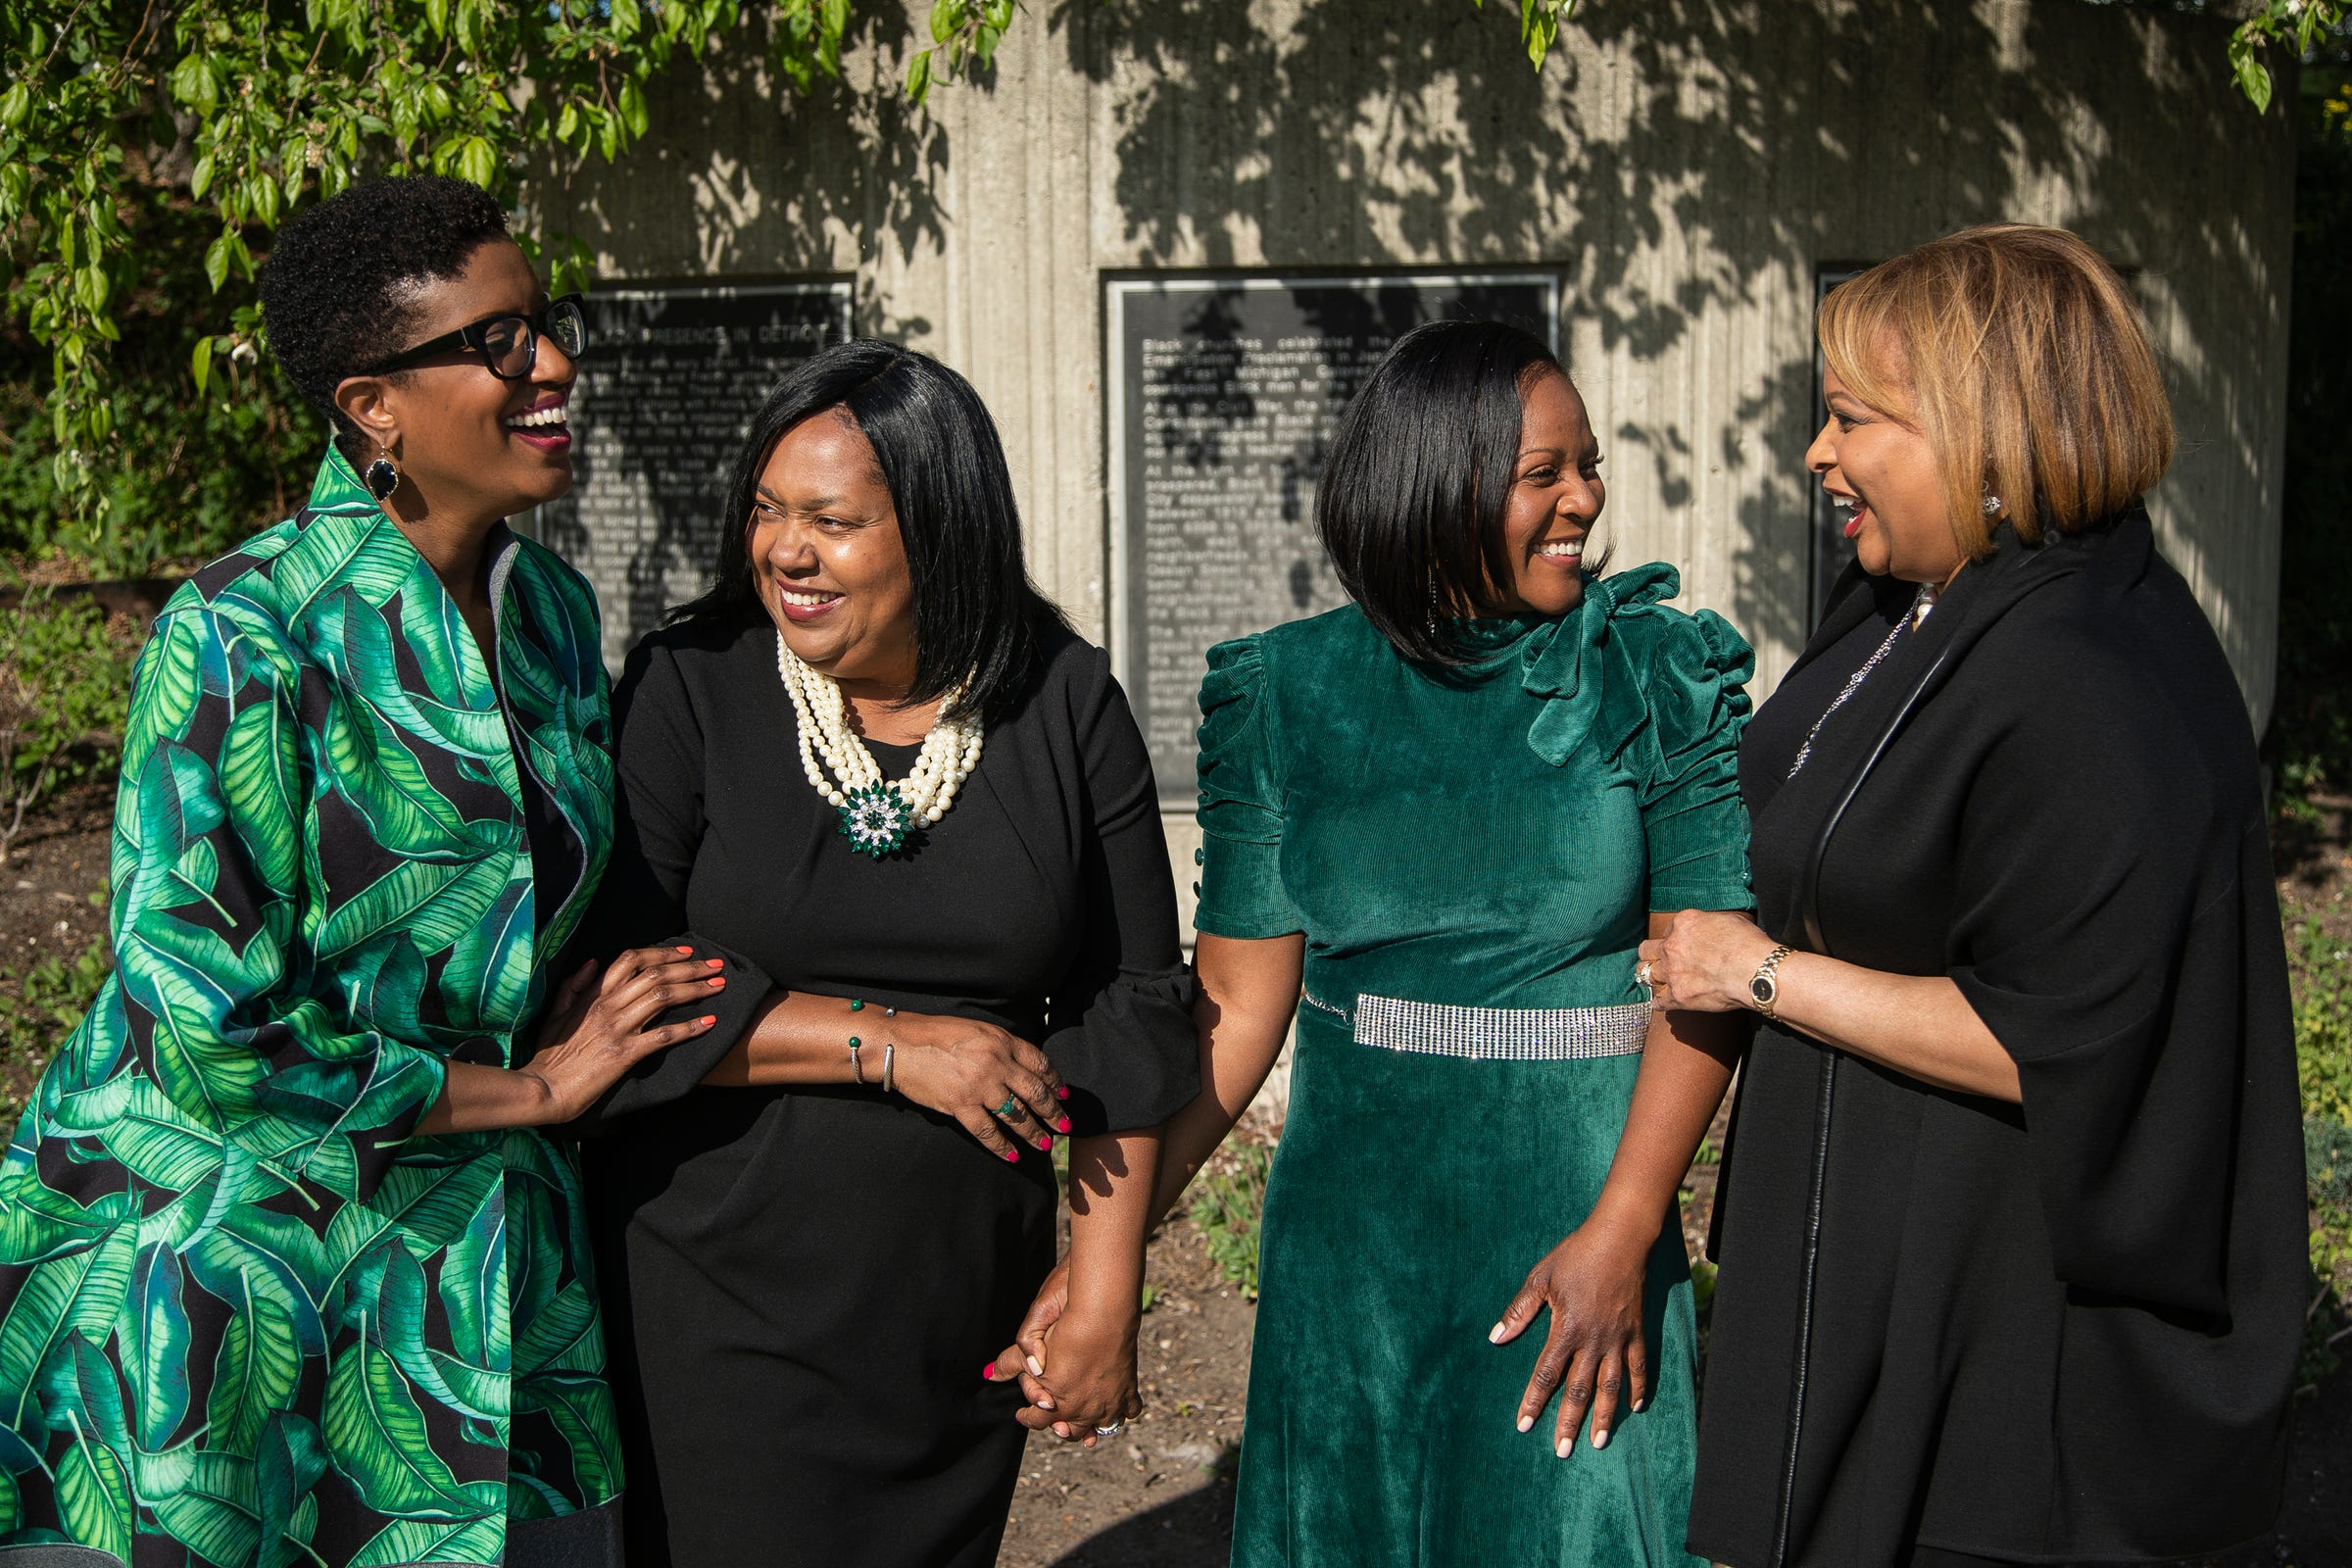 From left, The Links immediate past president Nutrena Tate of Great Lakes Chapter, current president Denise Brooks-Williams of the Detroit Chapter, president Linda Little of the Renaissance Chapter and immediate past president Therese Peace Agboh of the Greater Wayne County chapter in front of the Black Presence in Detroit historical marker in Detroit on May 13, 2021.